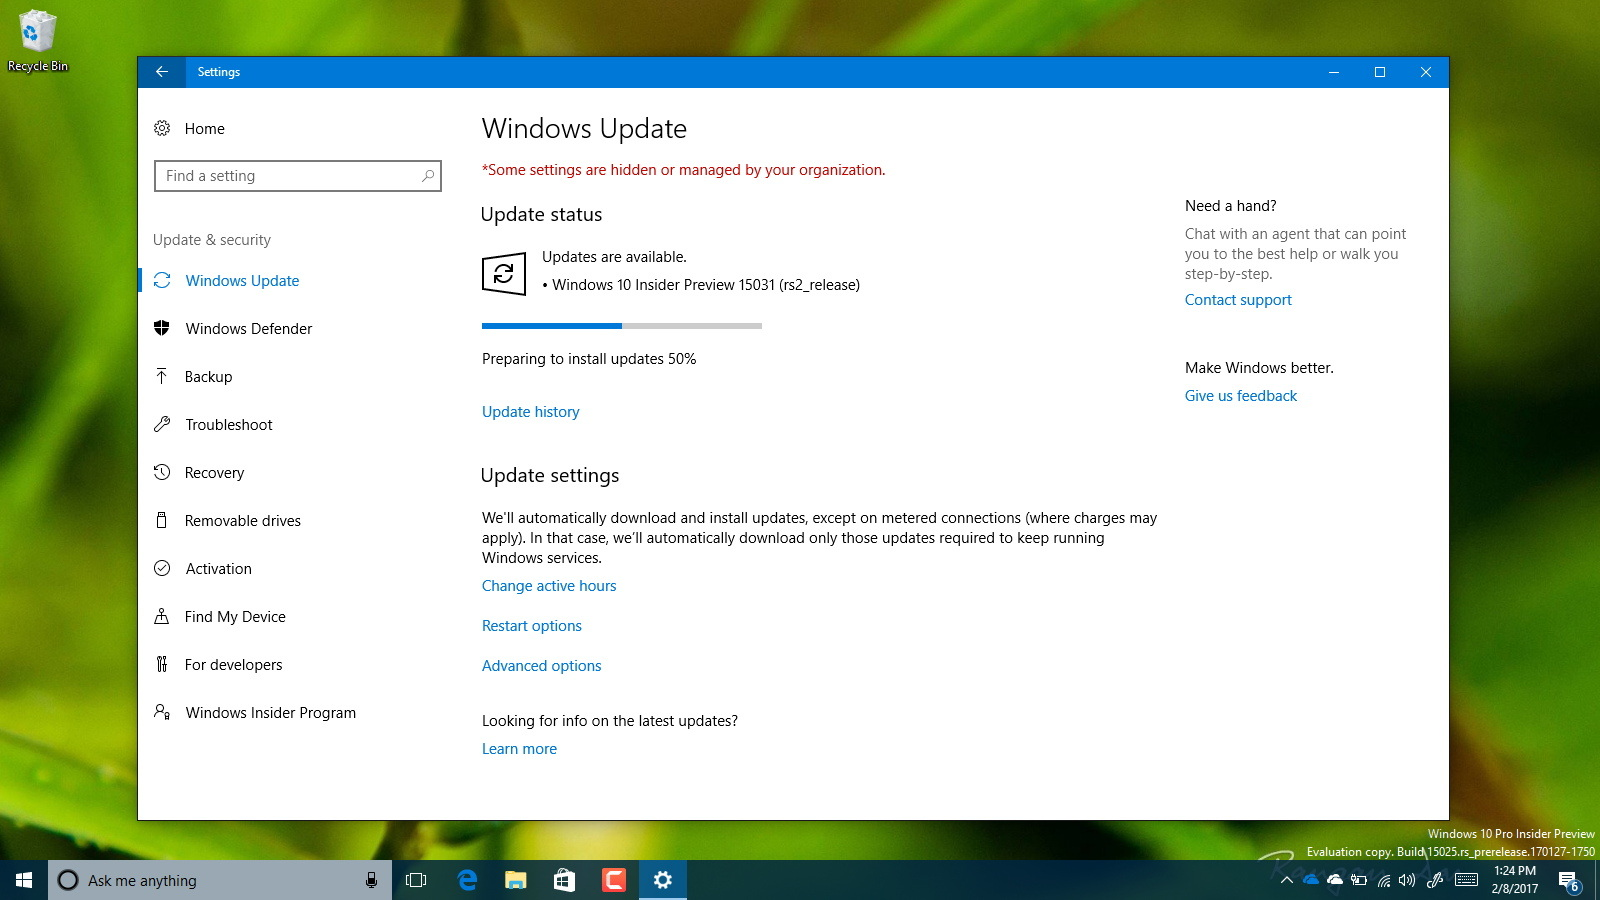 Windows 10 build 15031